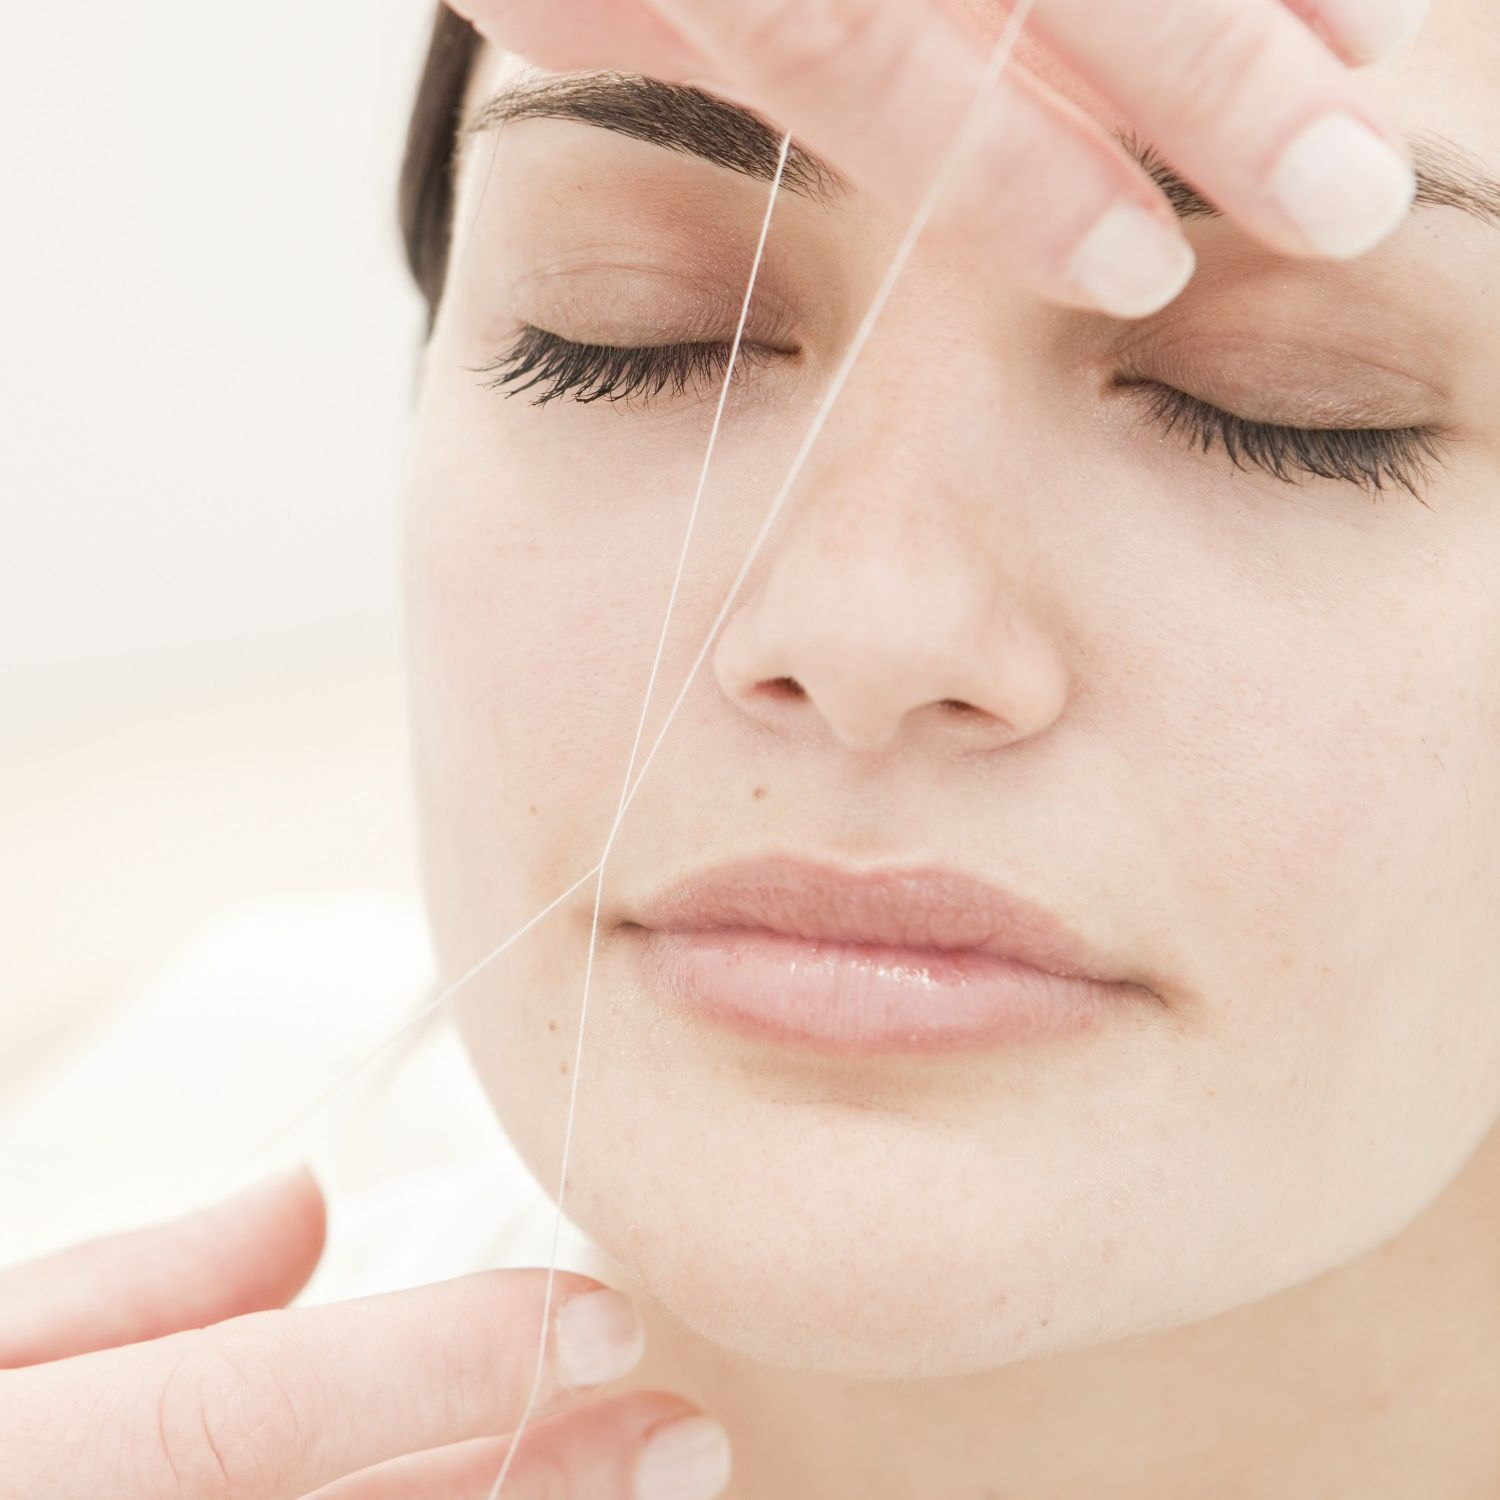 Facial Waxing Tips and Guide